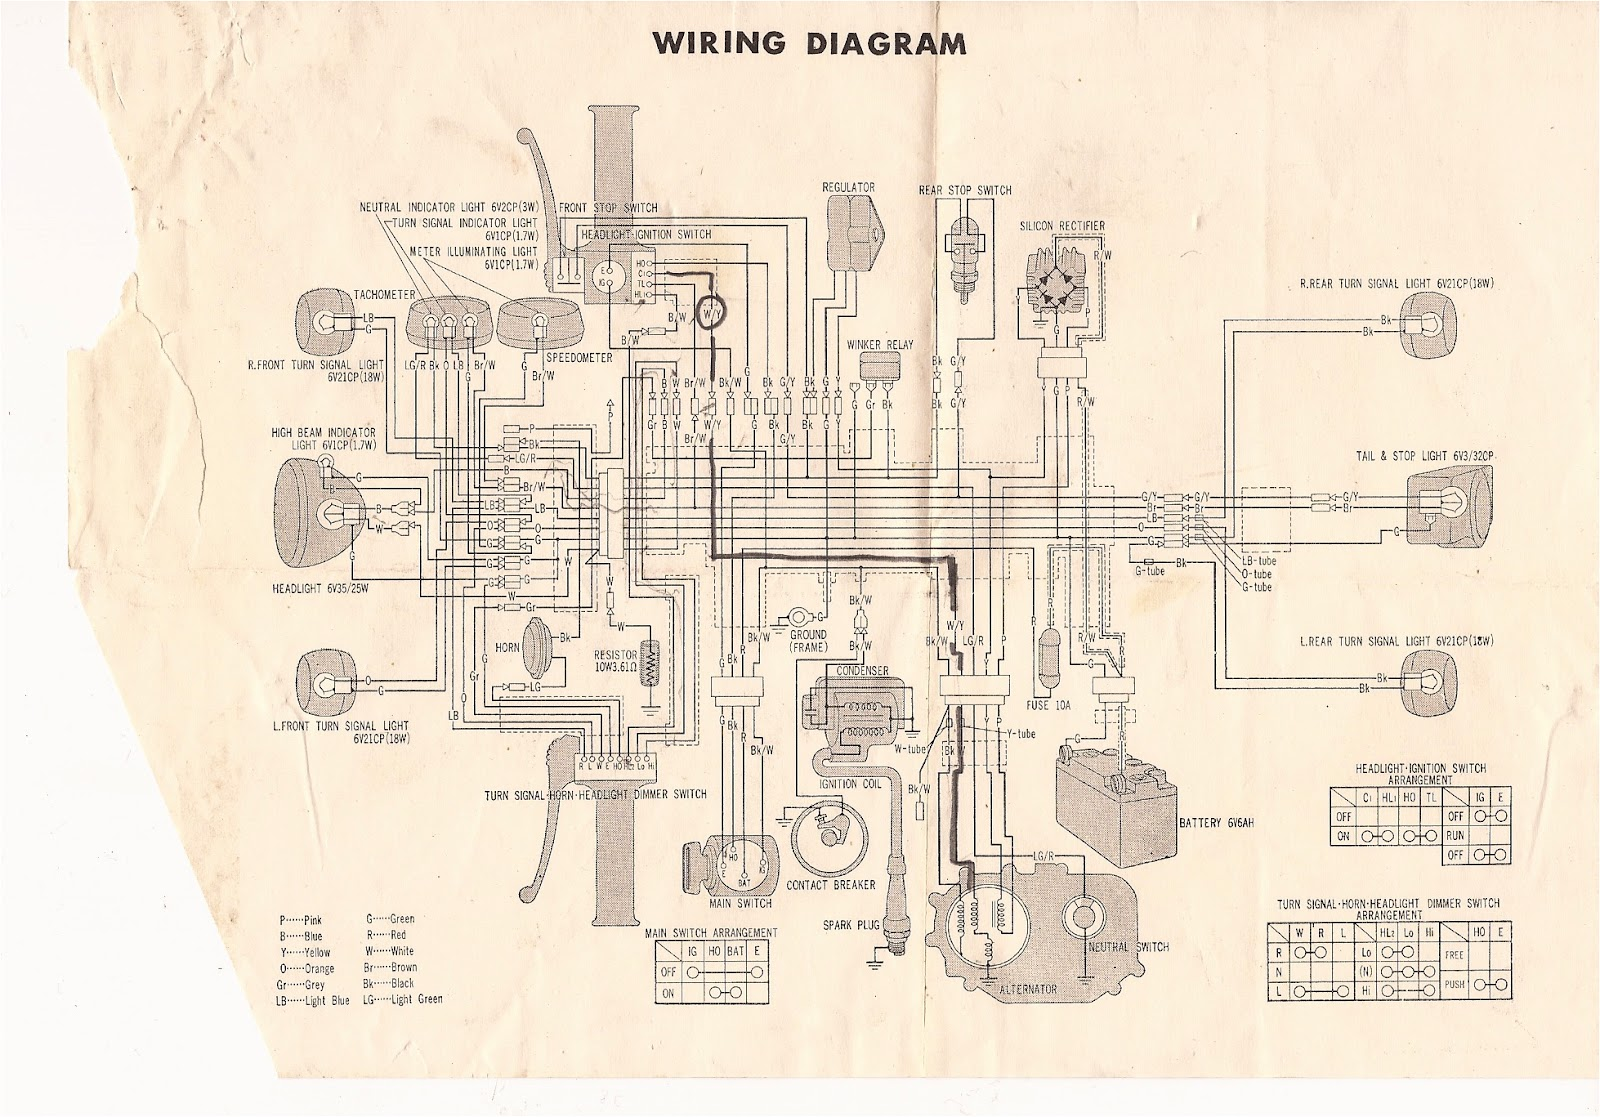 XL350+Wiring+diagram r4l may 2012 1975 honda ct90 wiring diagram at panicattacktreatment.co